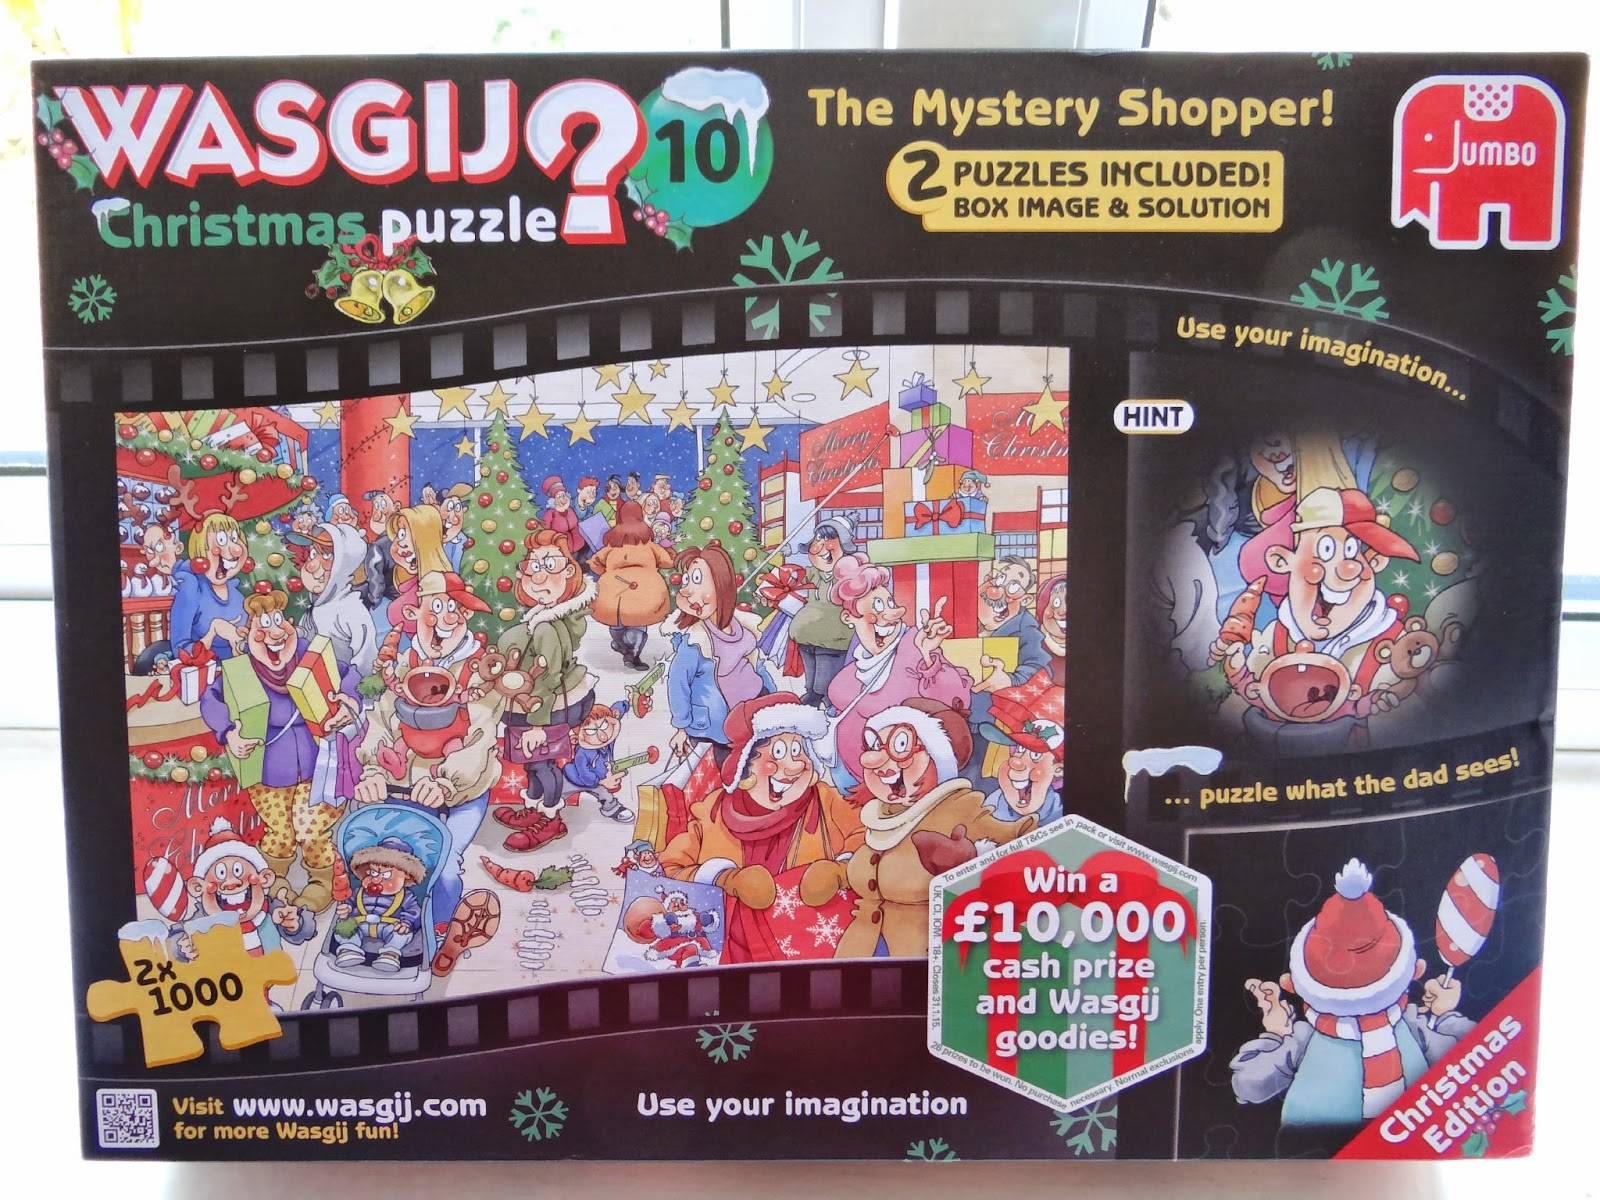 Wasgij Puzzle, Christmas puzzle, Christmas gift